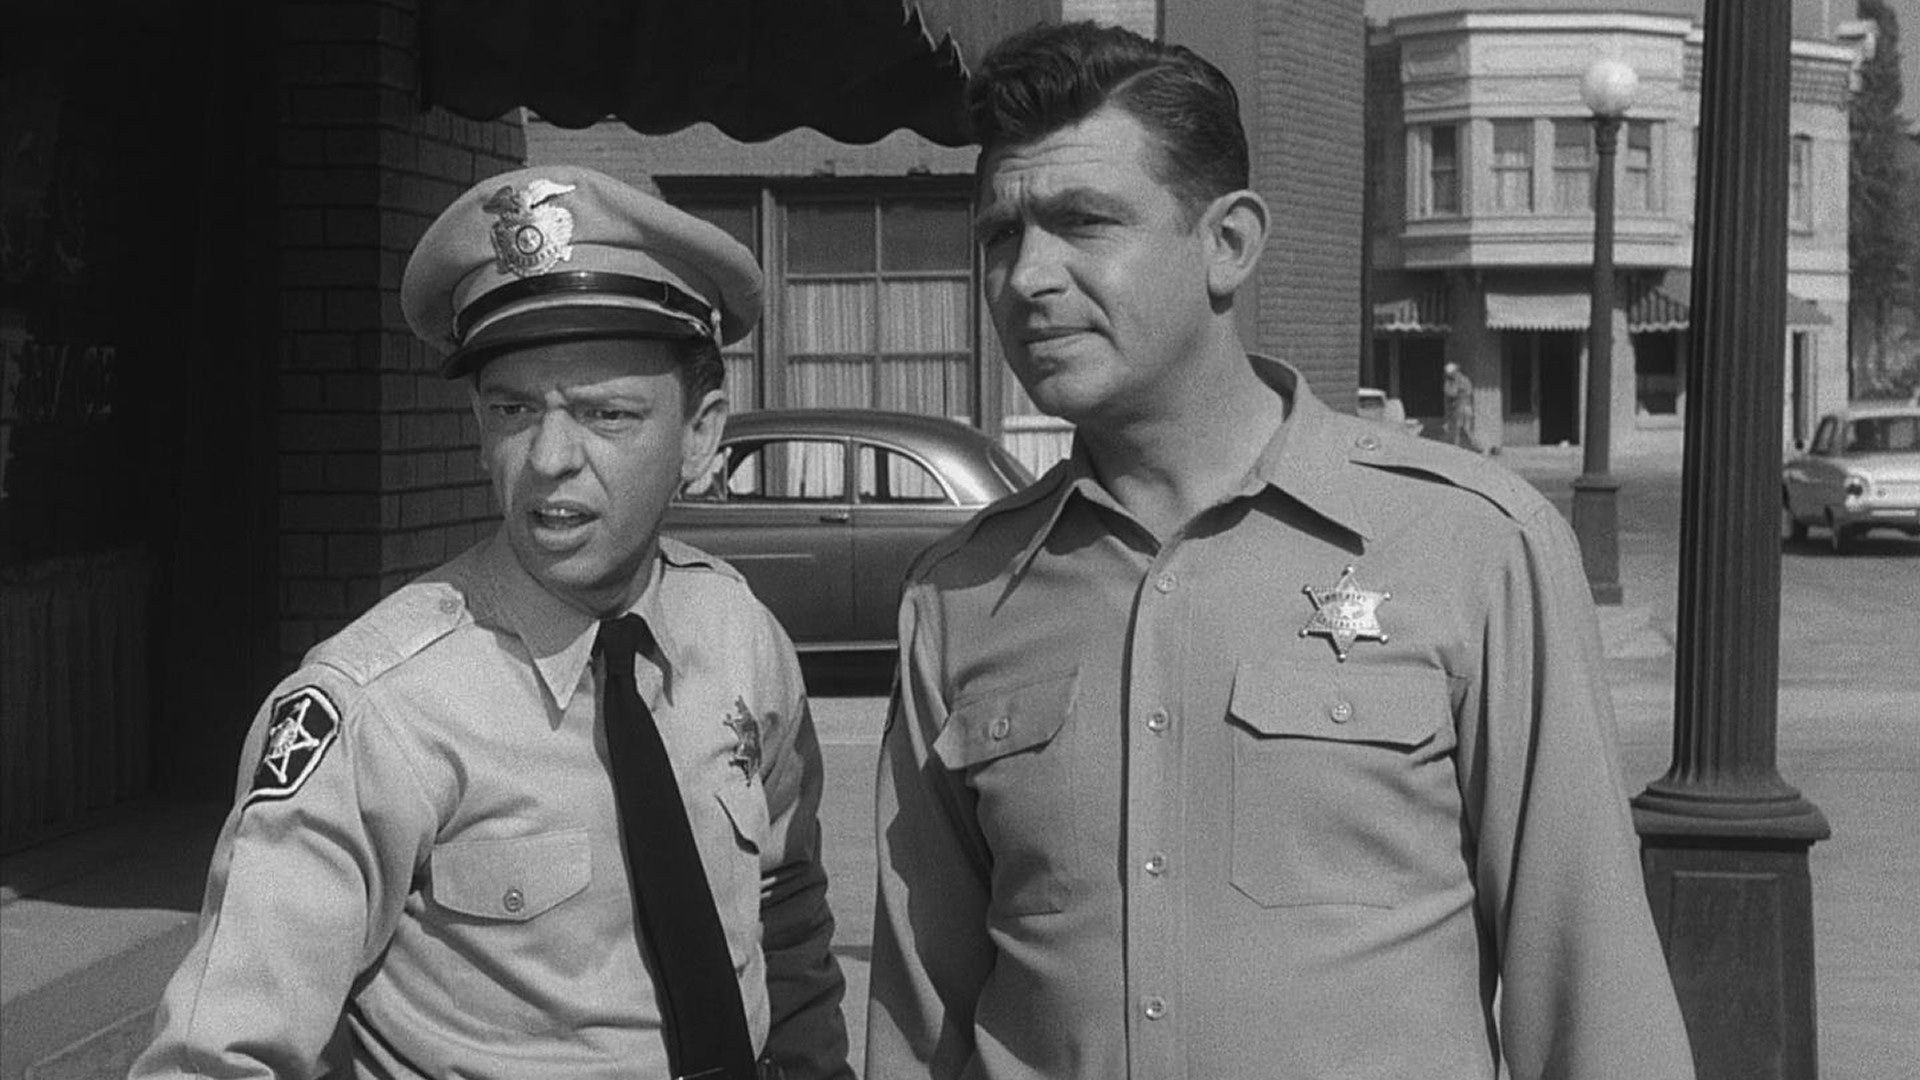 andy griffith season 2 episode 22